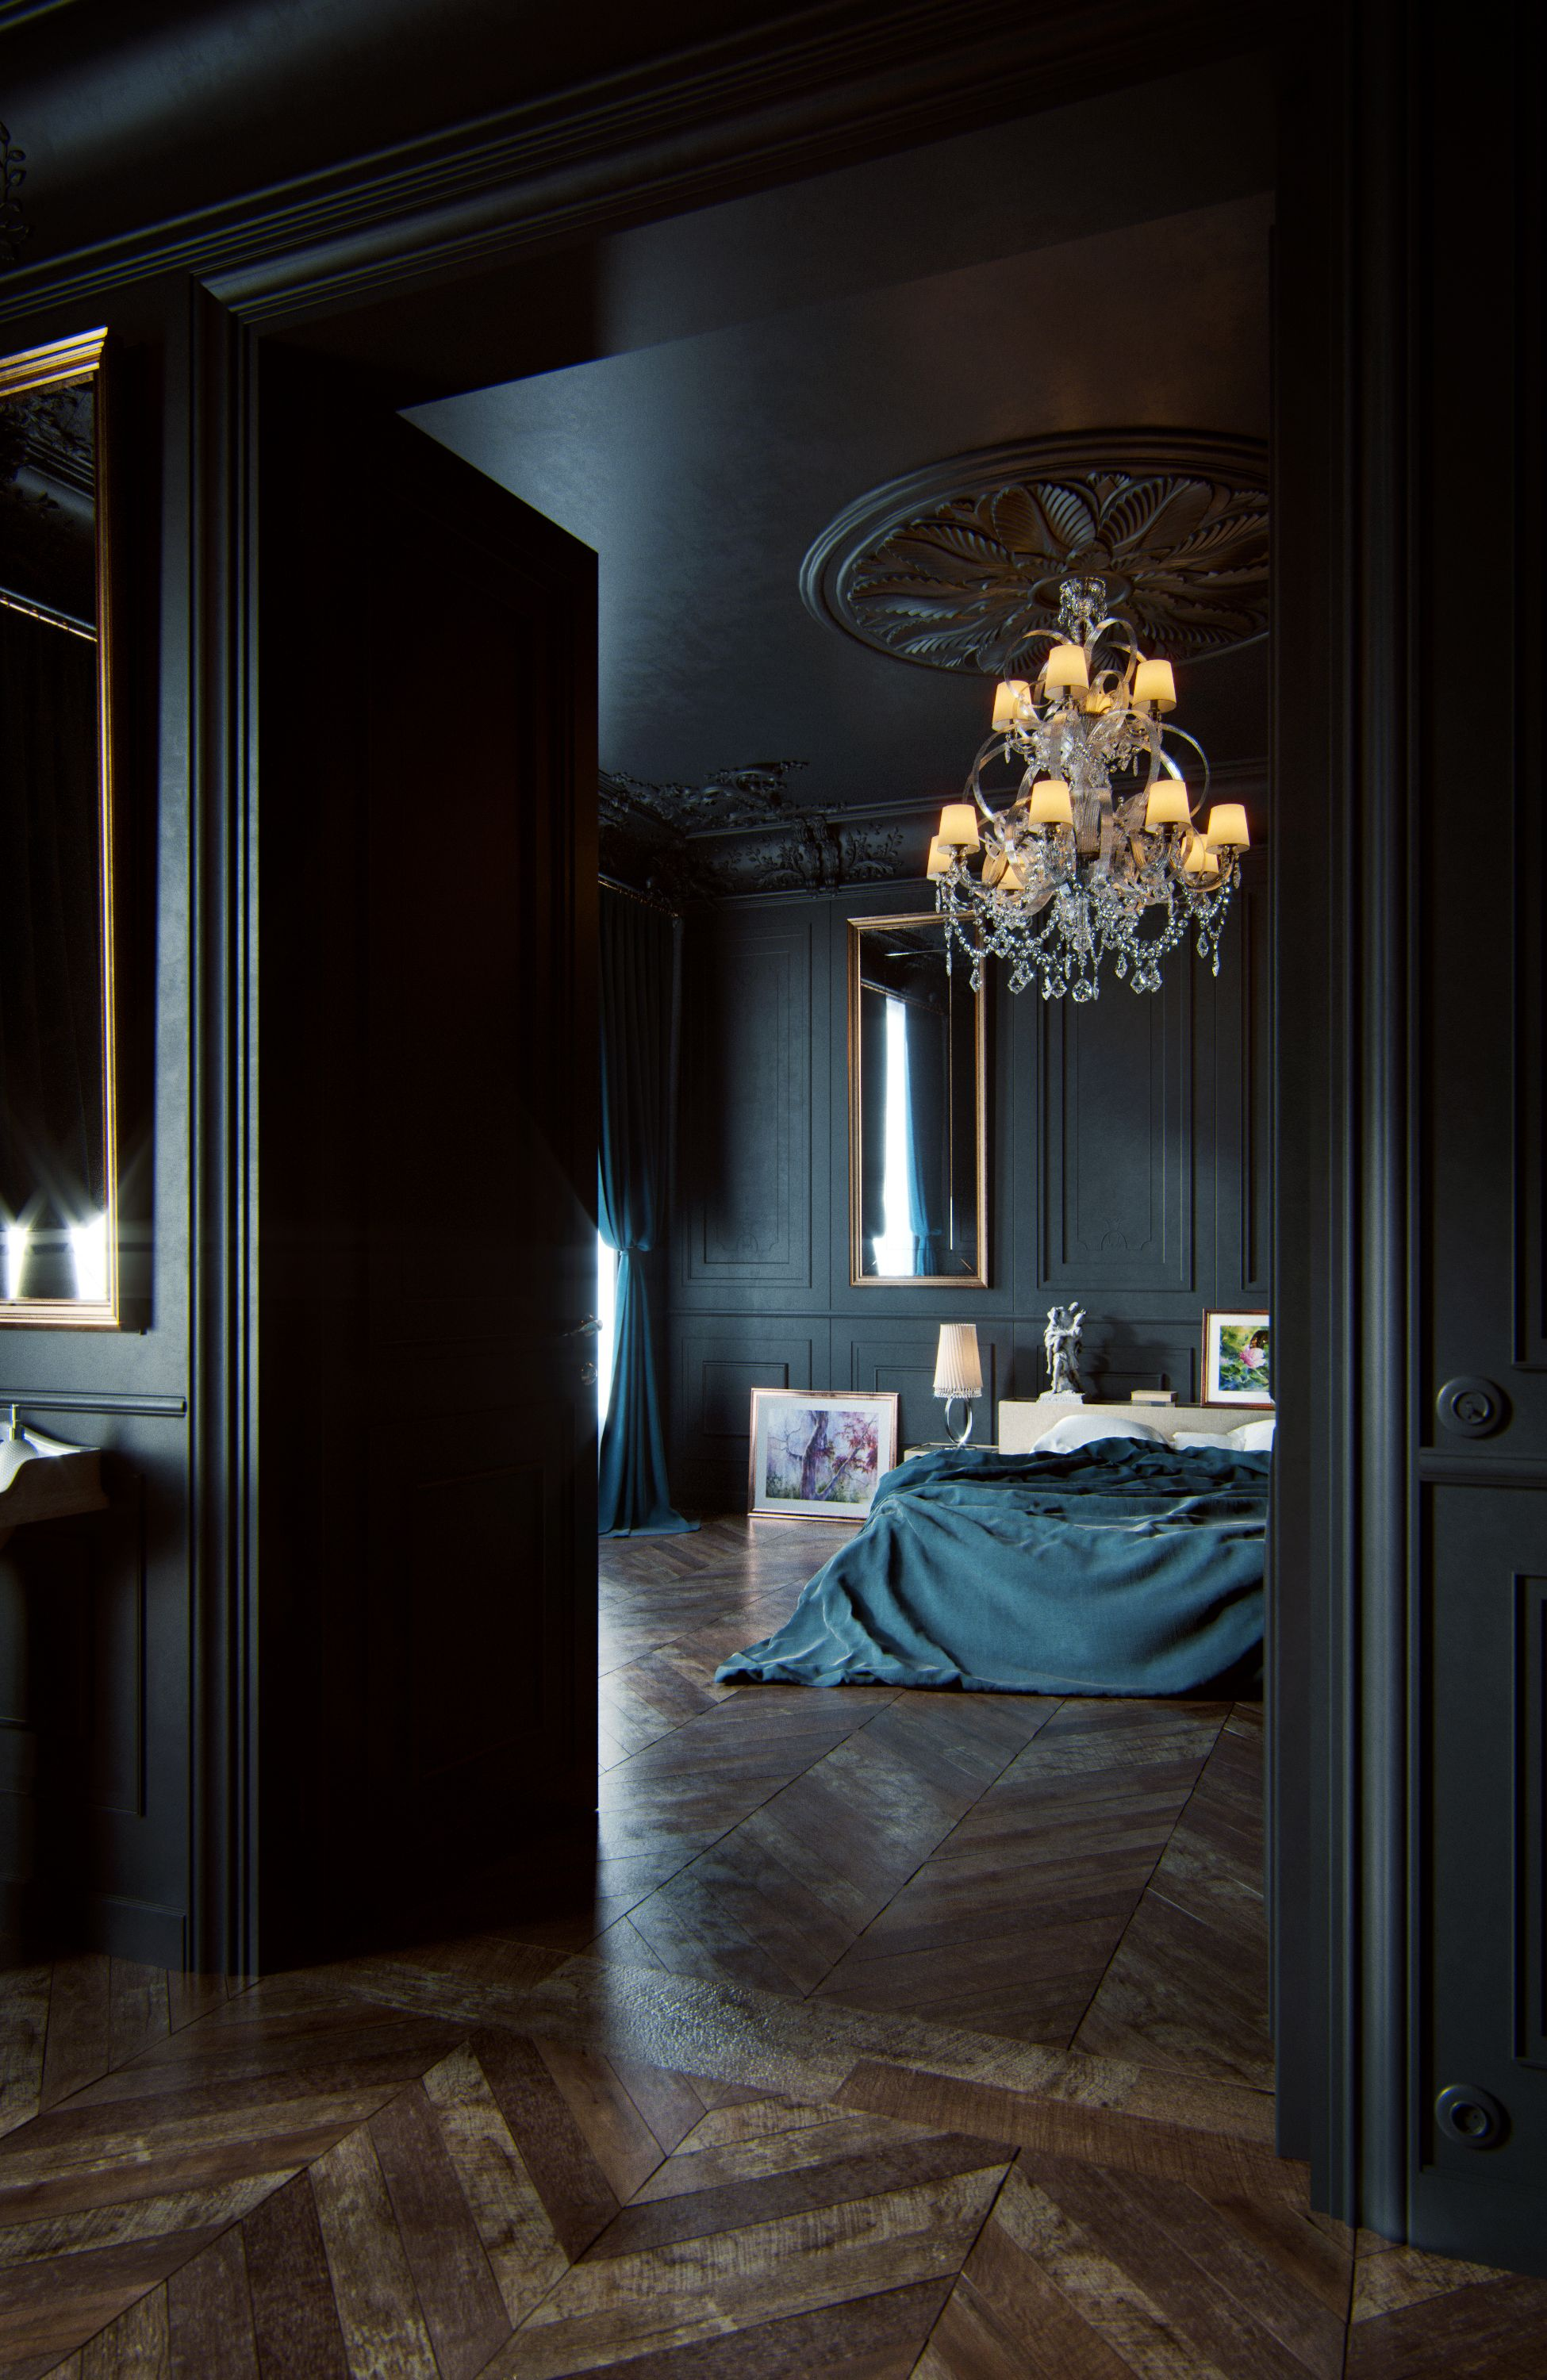 Black haussmann cgi also best ideas for my new house images in rh pinterest